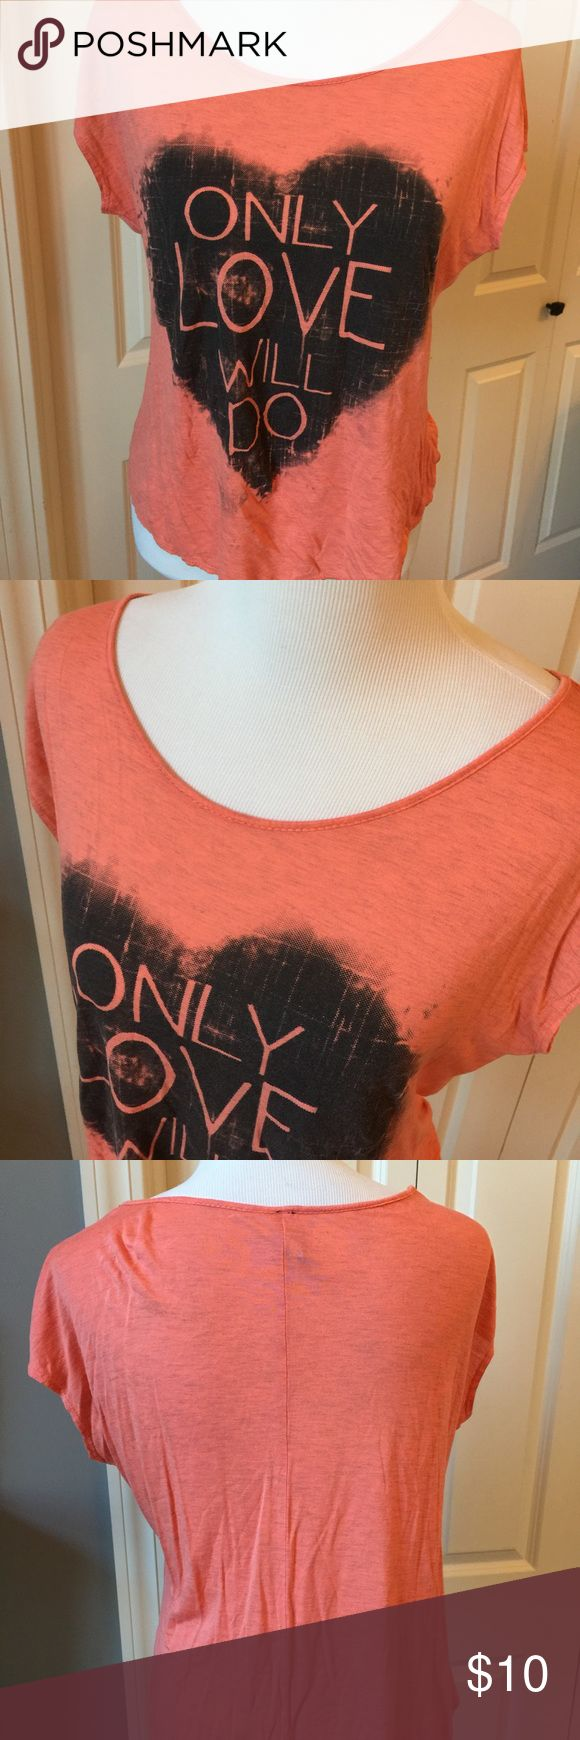 Only love Will do Tee 99% rayon 1% polyester ing Tops Tees - Short Sleeve